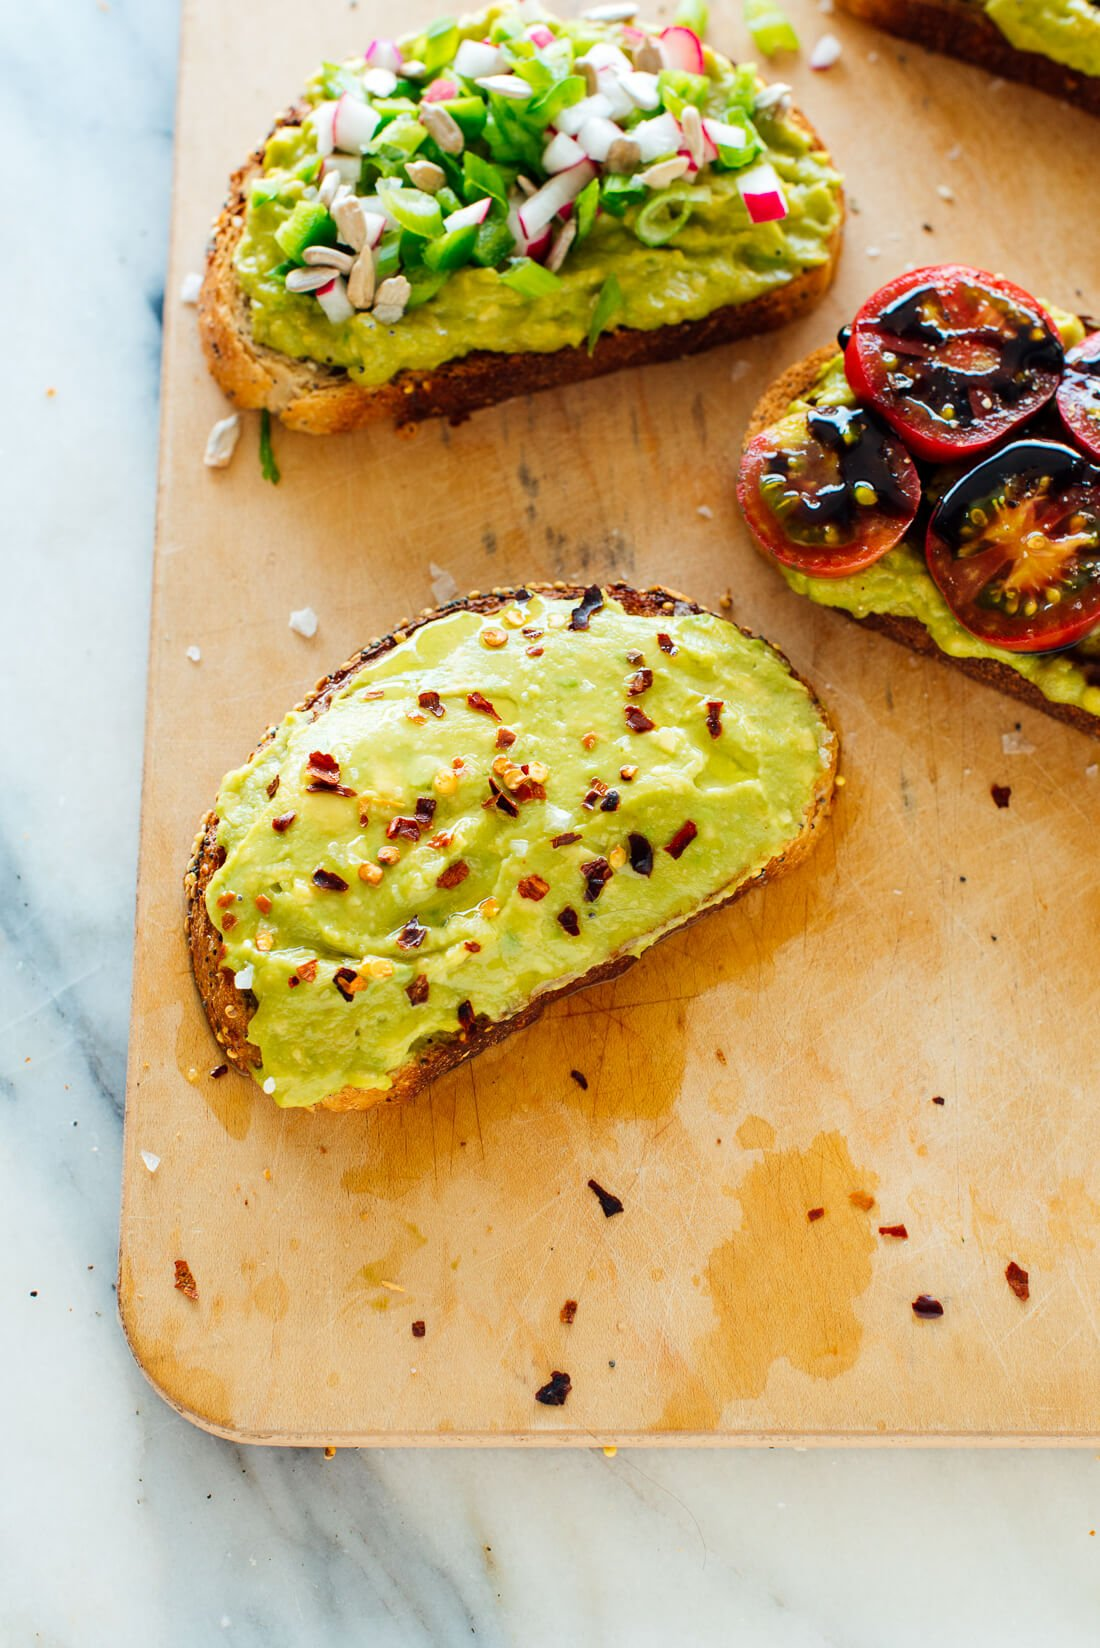 avocado toast with red pepper flakes, lemon juice and olive oil